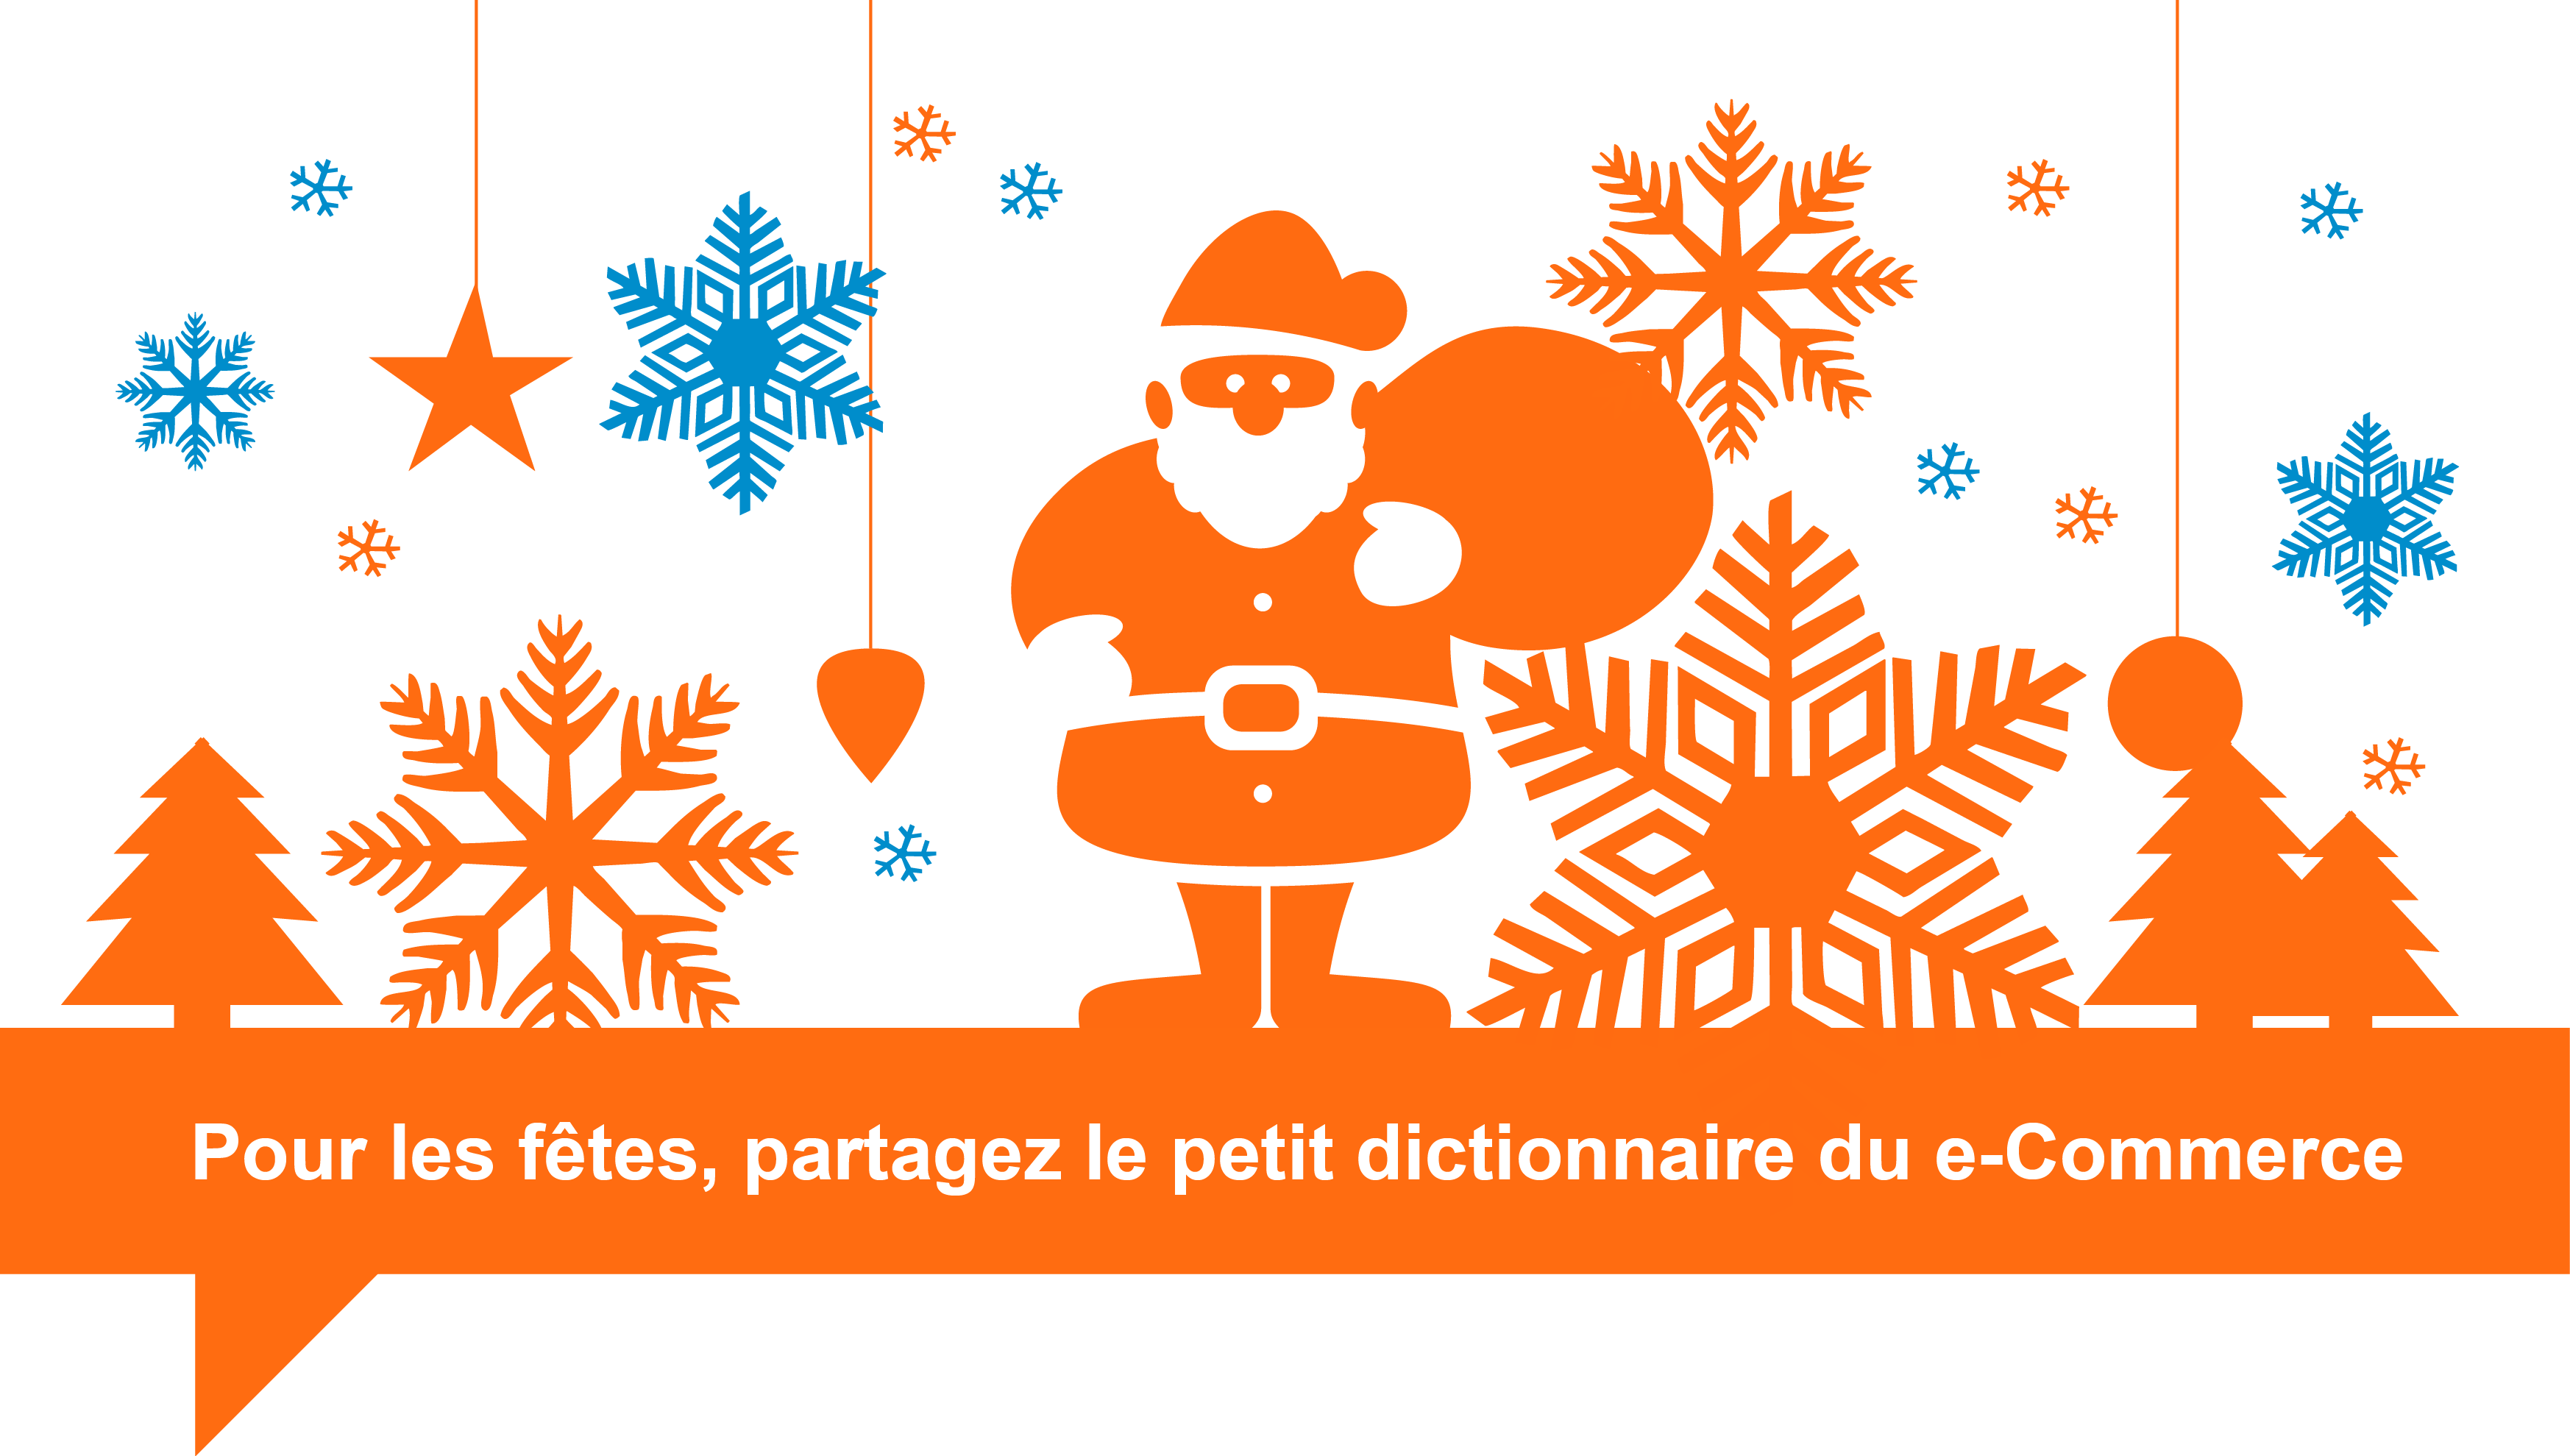 les-contes-e-commerce-the-happy-bullshit-christmas-en-tete